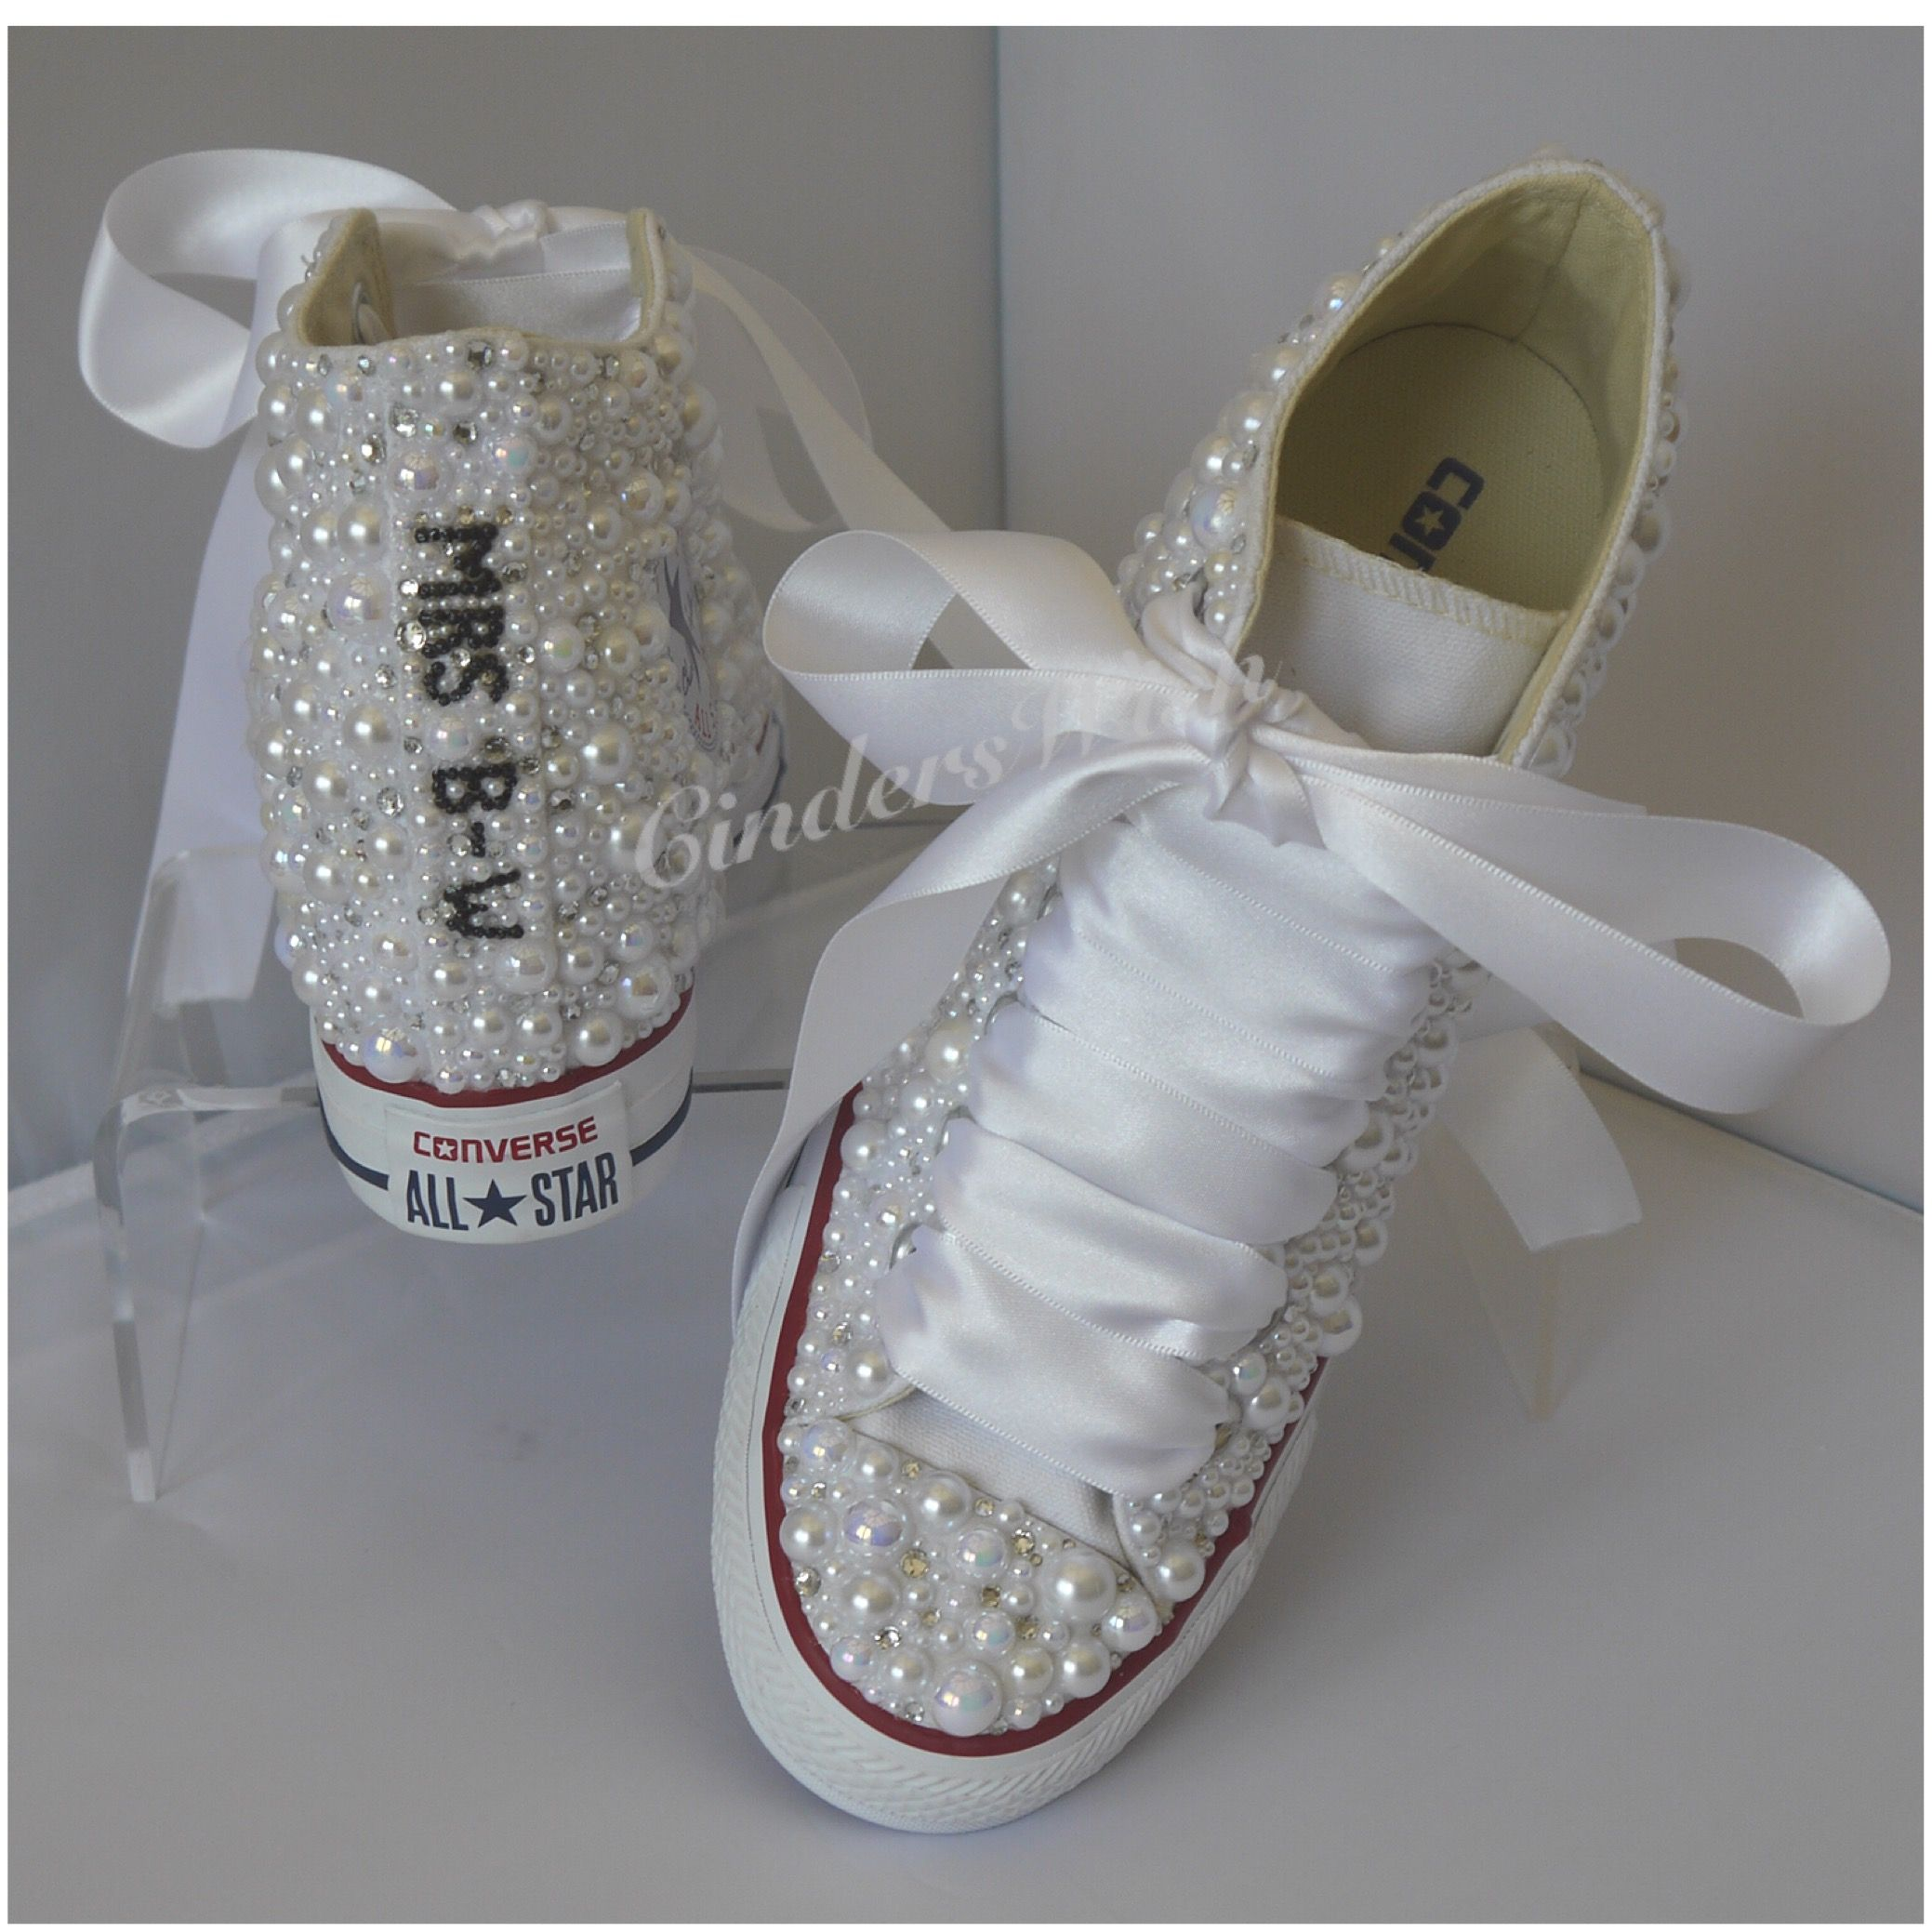 Details about Wedding Converse, PERSONALISED with Pearls and crystals, all sizes available